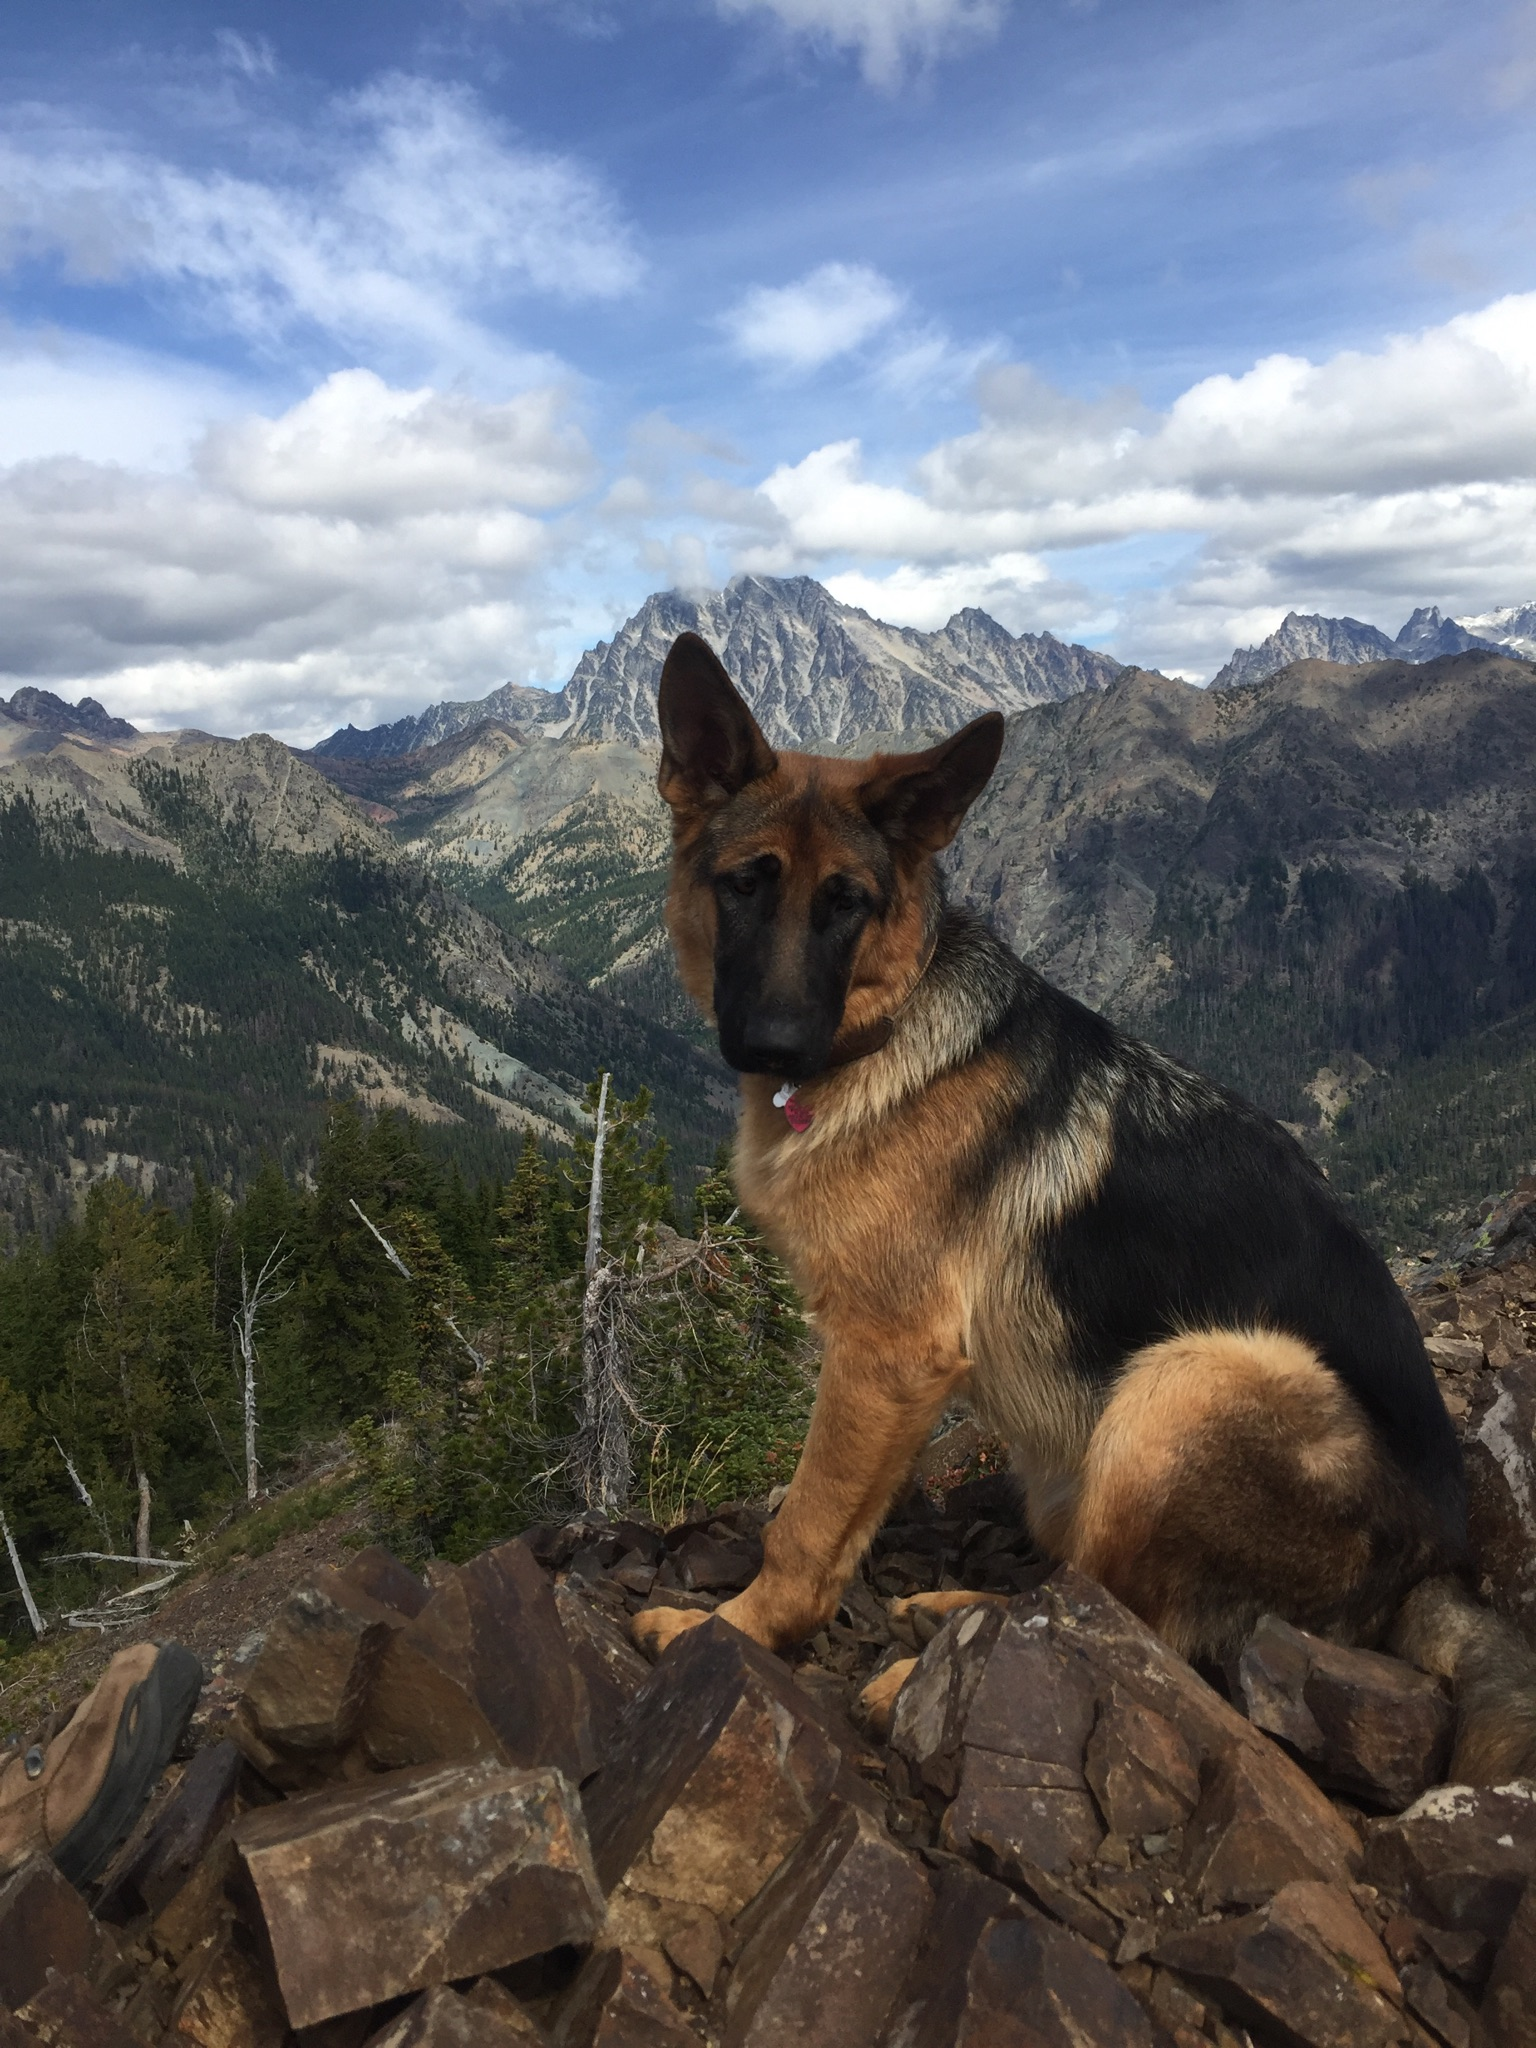 Zoe the Hiking Dog